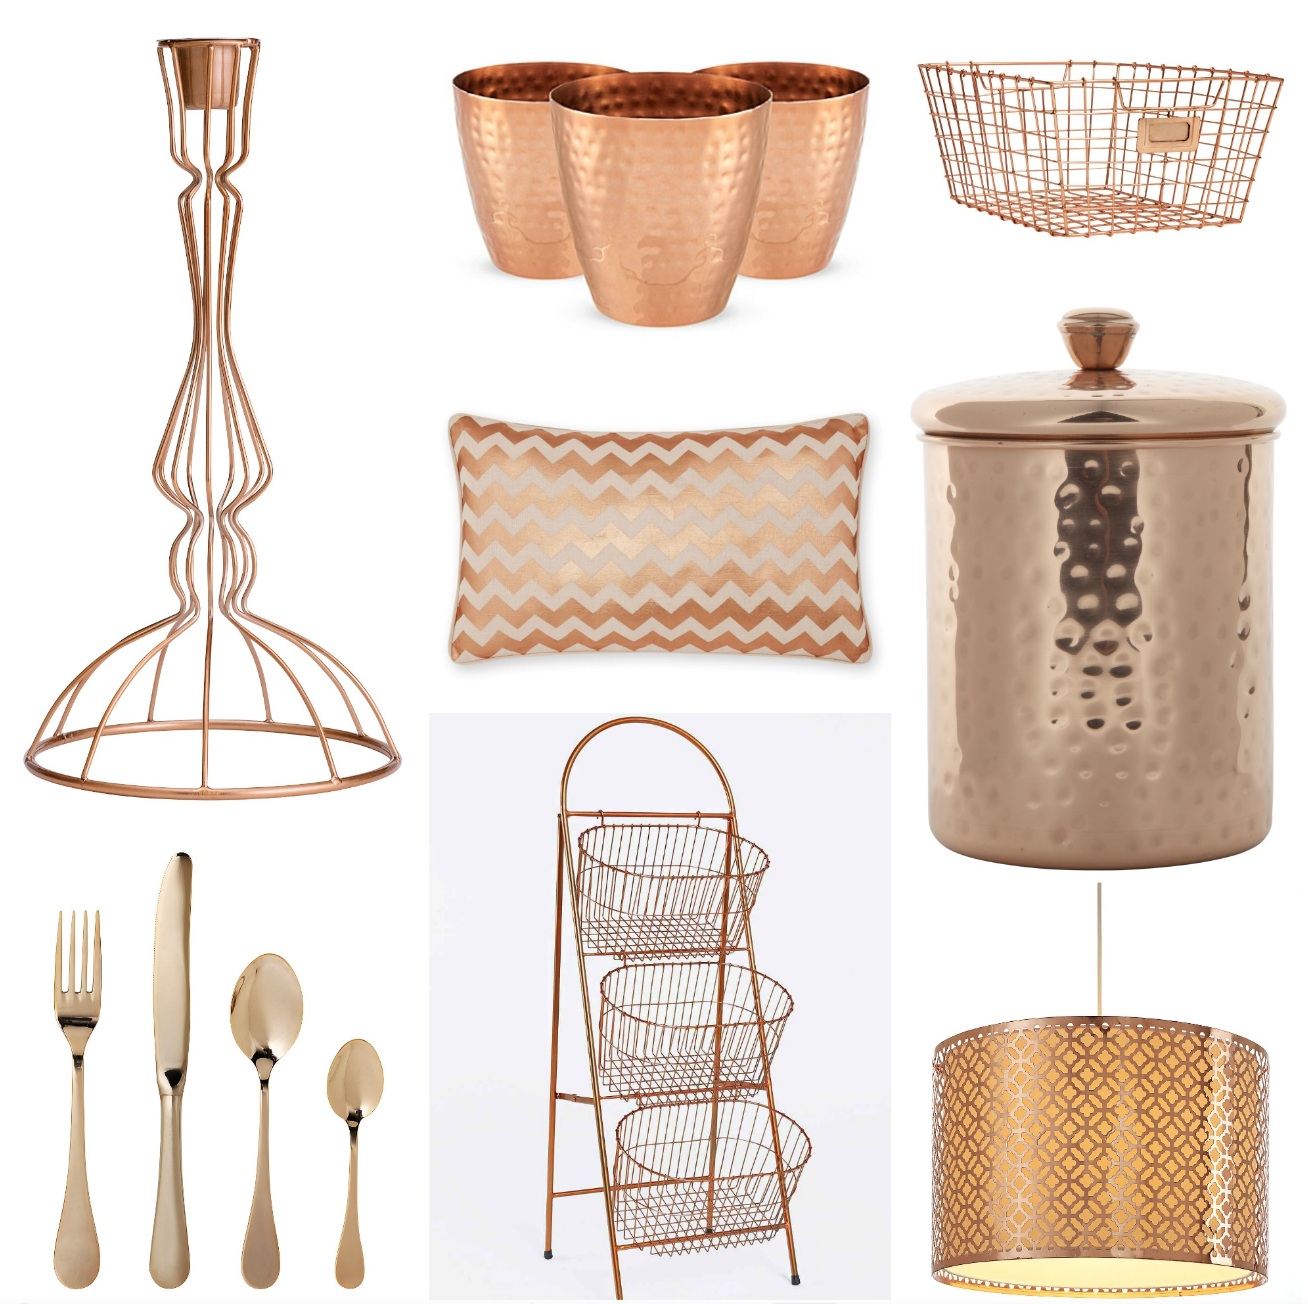 mamasVIB | V. I. BUYS: Copper Crush: 12 great way to instantly update your home | copper | rose gold | home decor | home buys | mamasVIB | H&M home | bar cart | gold home buys | sainsburys | marks and spec'er | m&S | cushion | copper cushions | storage baskets | chic home buys | hubs 100 | home buys | interiors | cheap home | decorating | interior | shopping